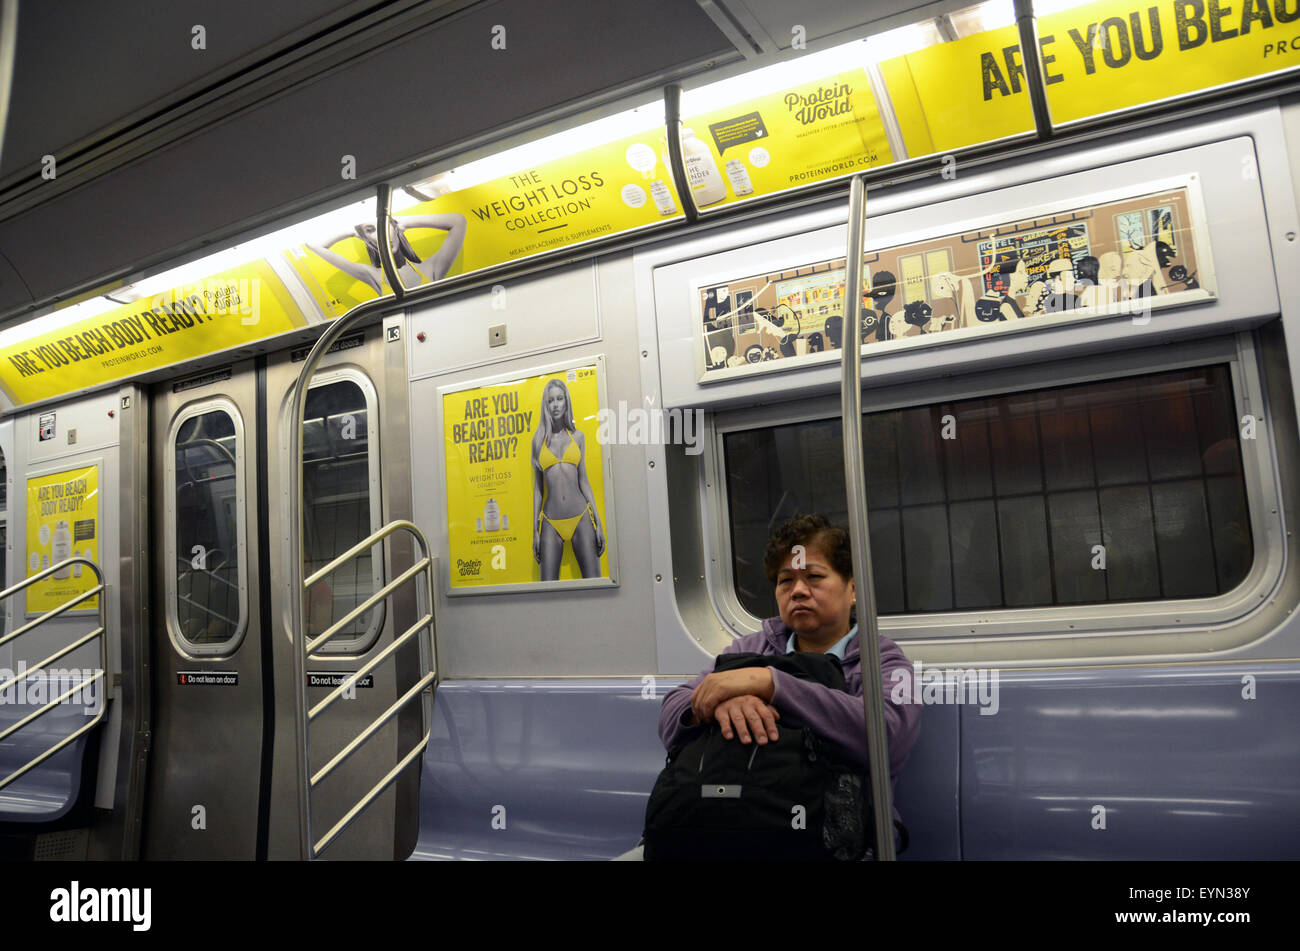 protein world advert beach body ready weightloss collection subway tube underground advert controversial poster - Stock Image